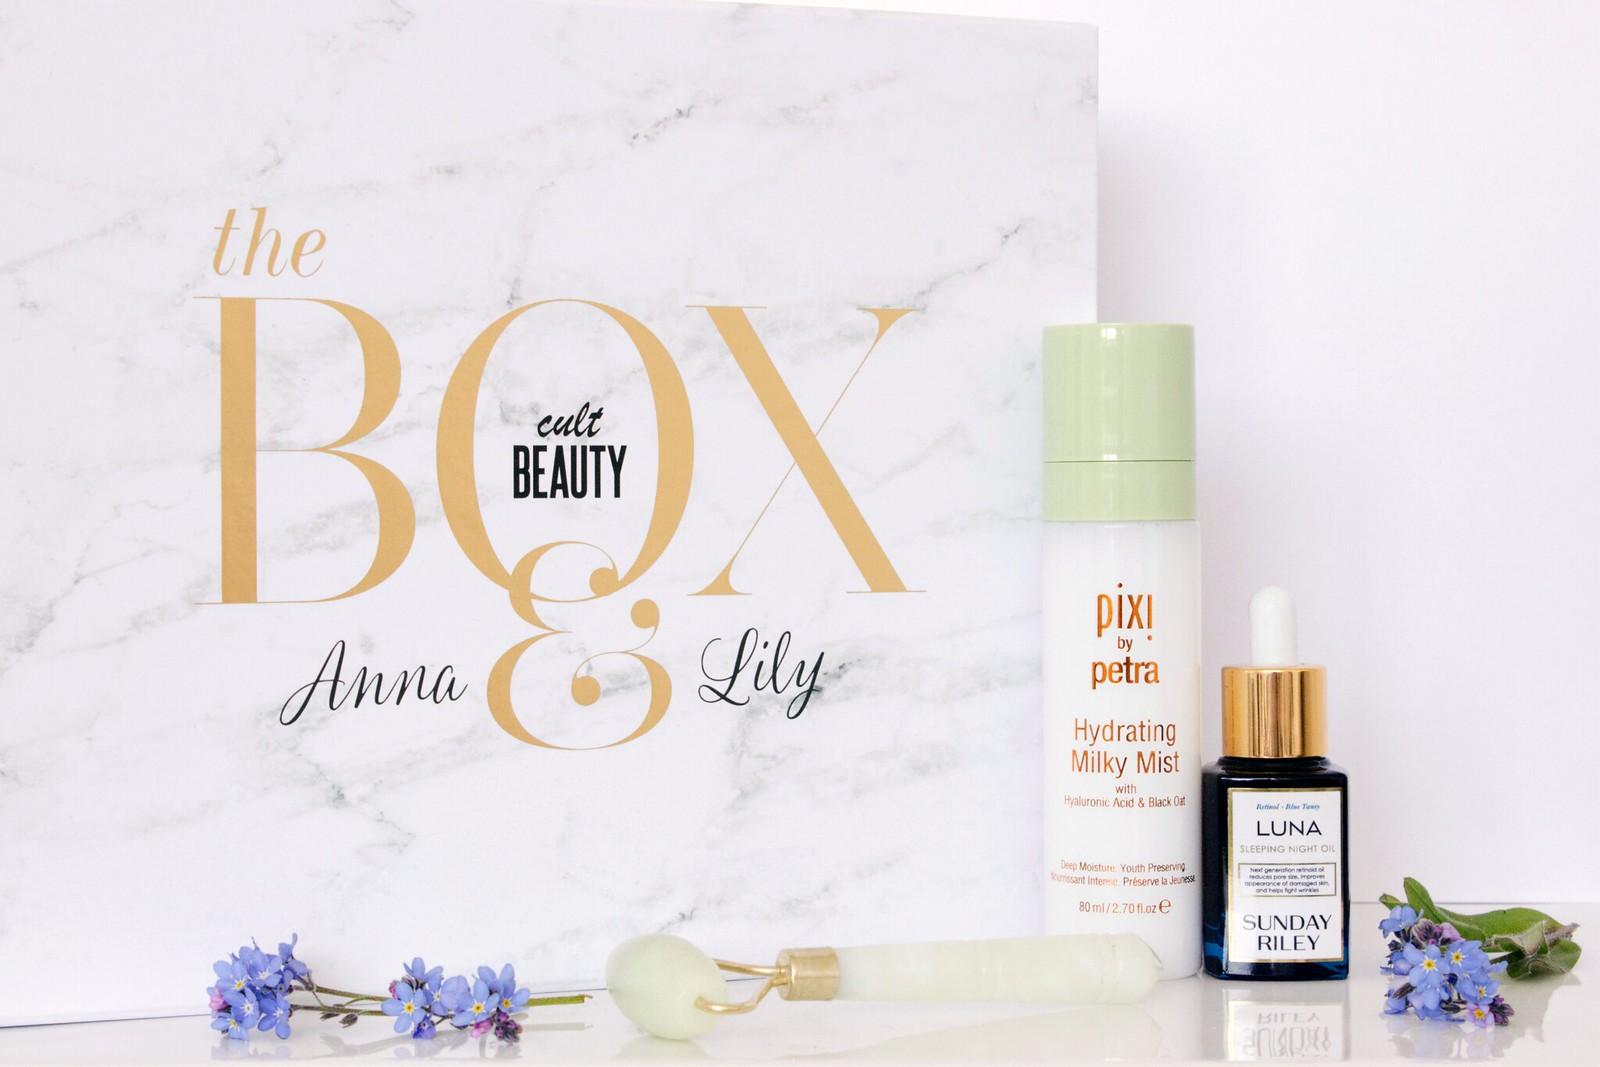 The Cult Beauty Box by Anna and Lily